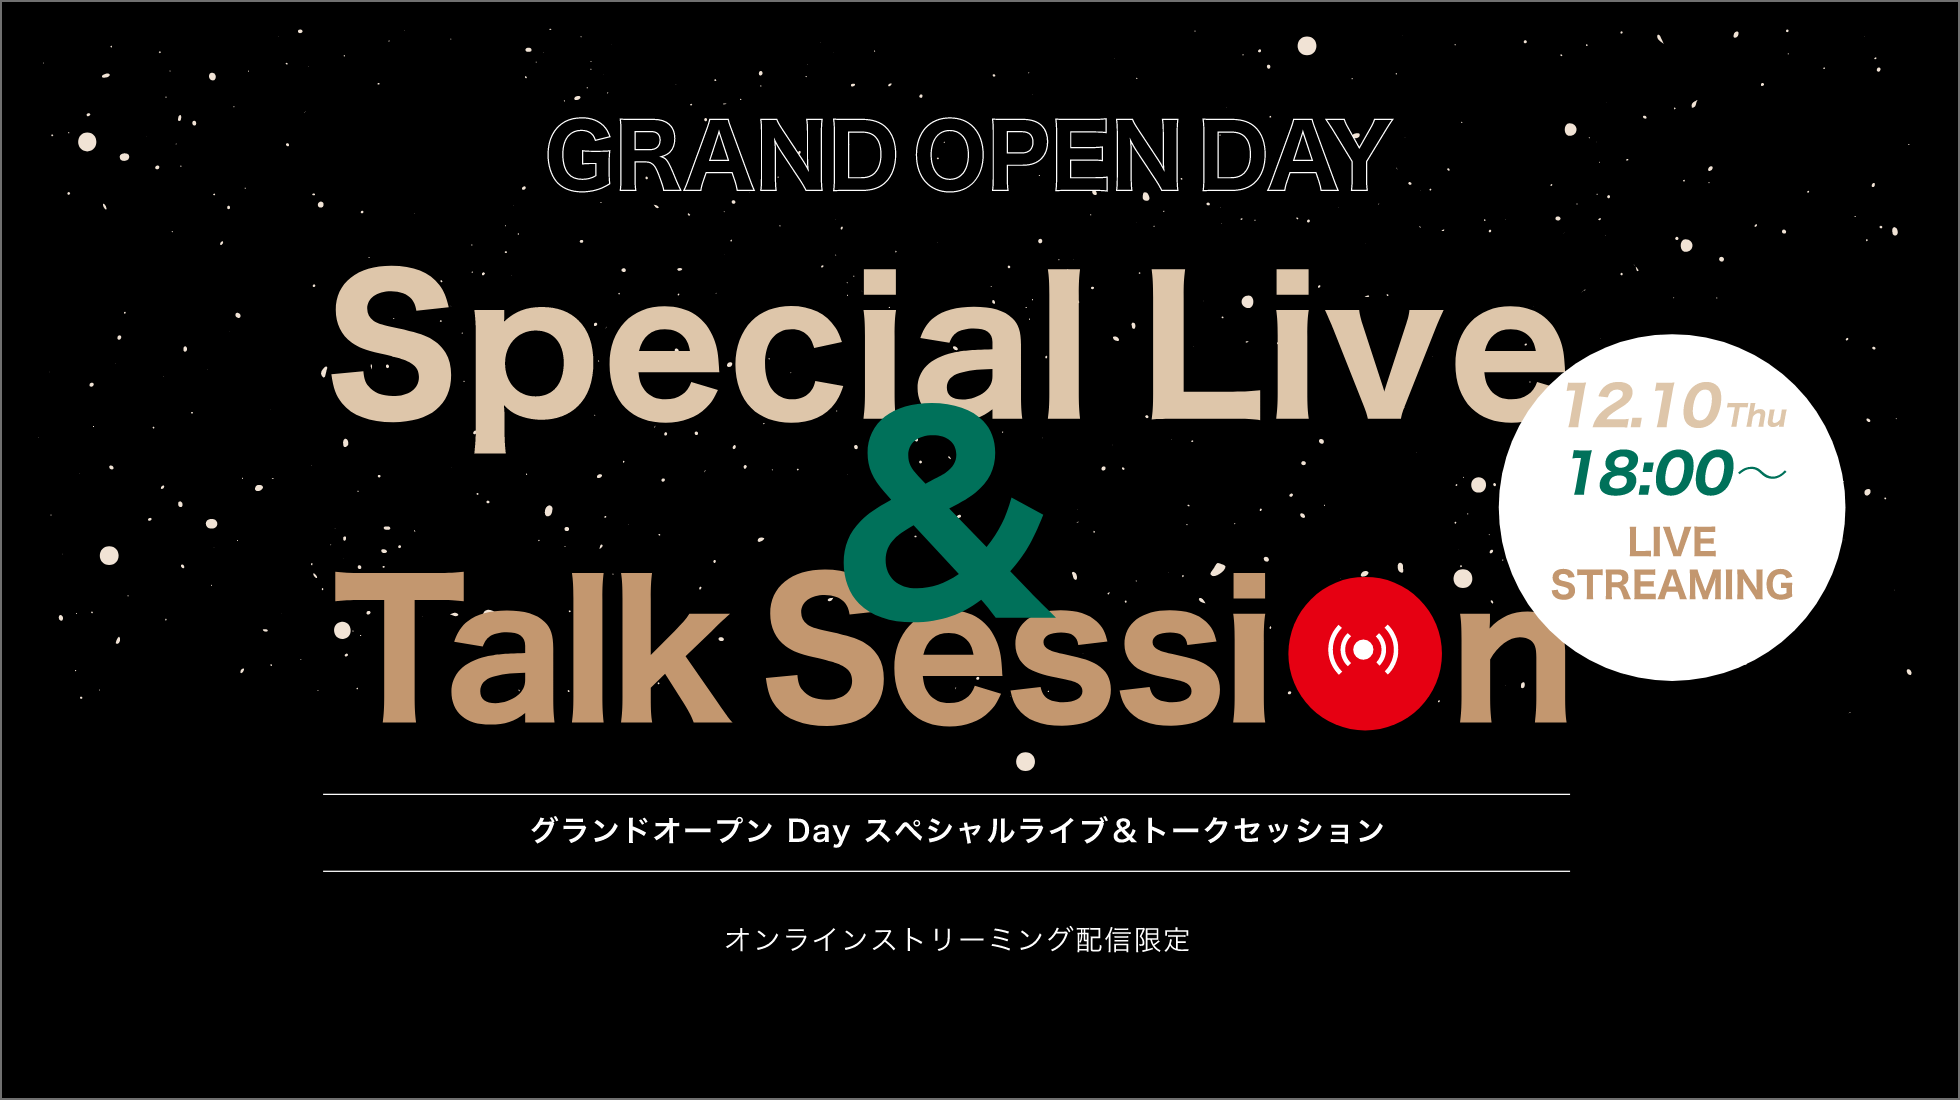 Special LIve & Talk Session